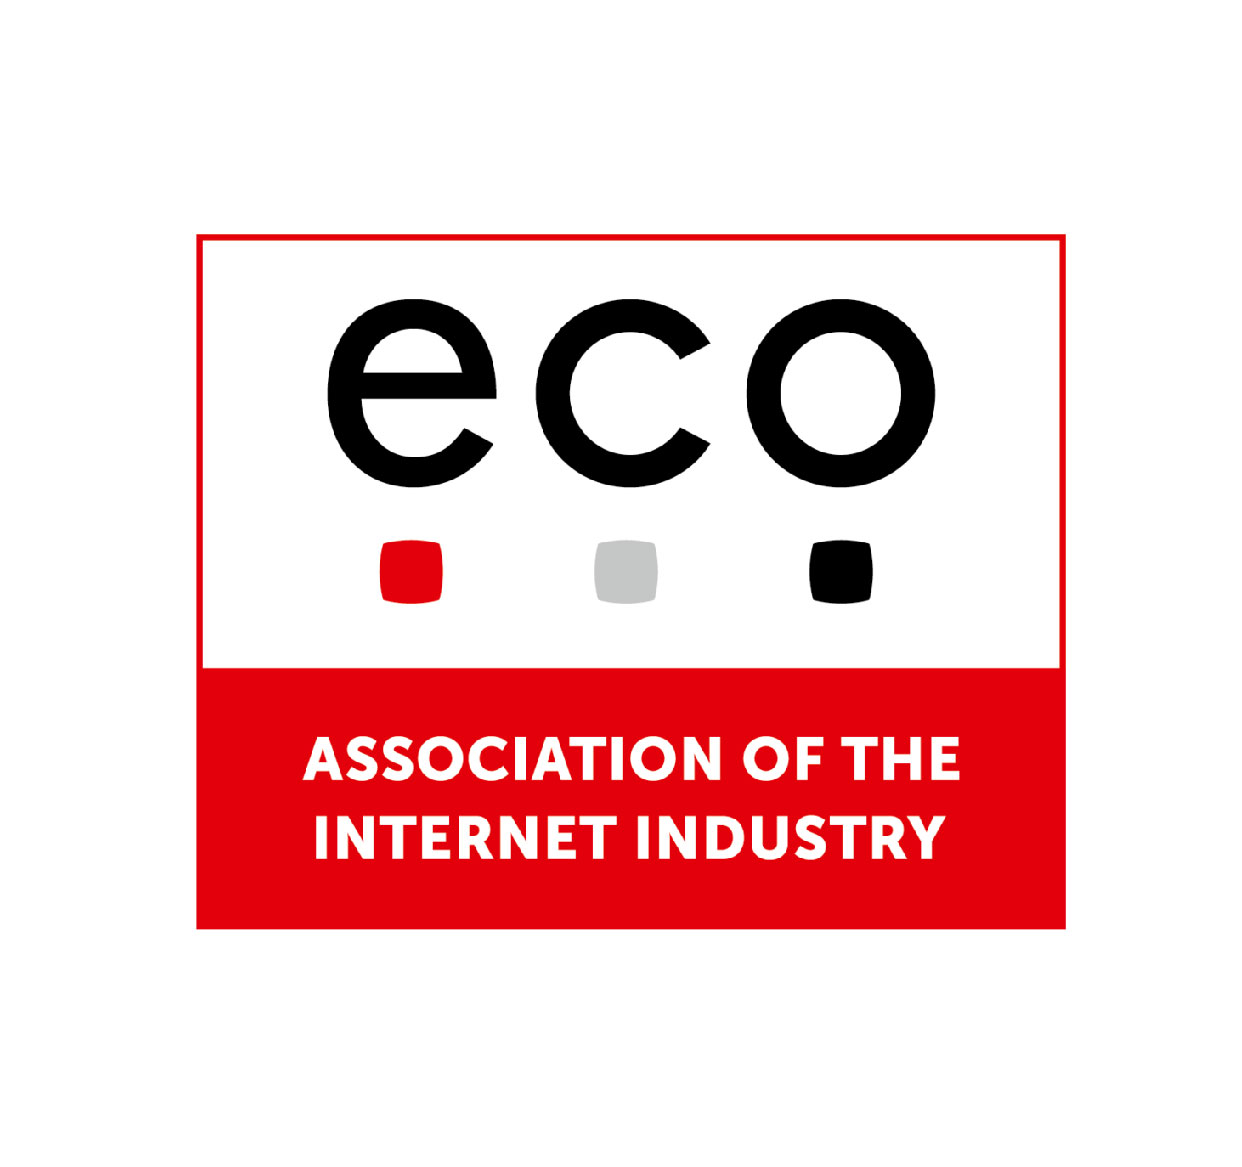 eco - Assocciation of the Internet Industry